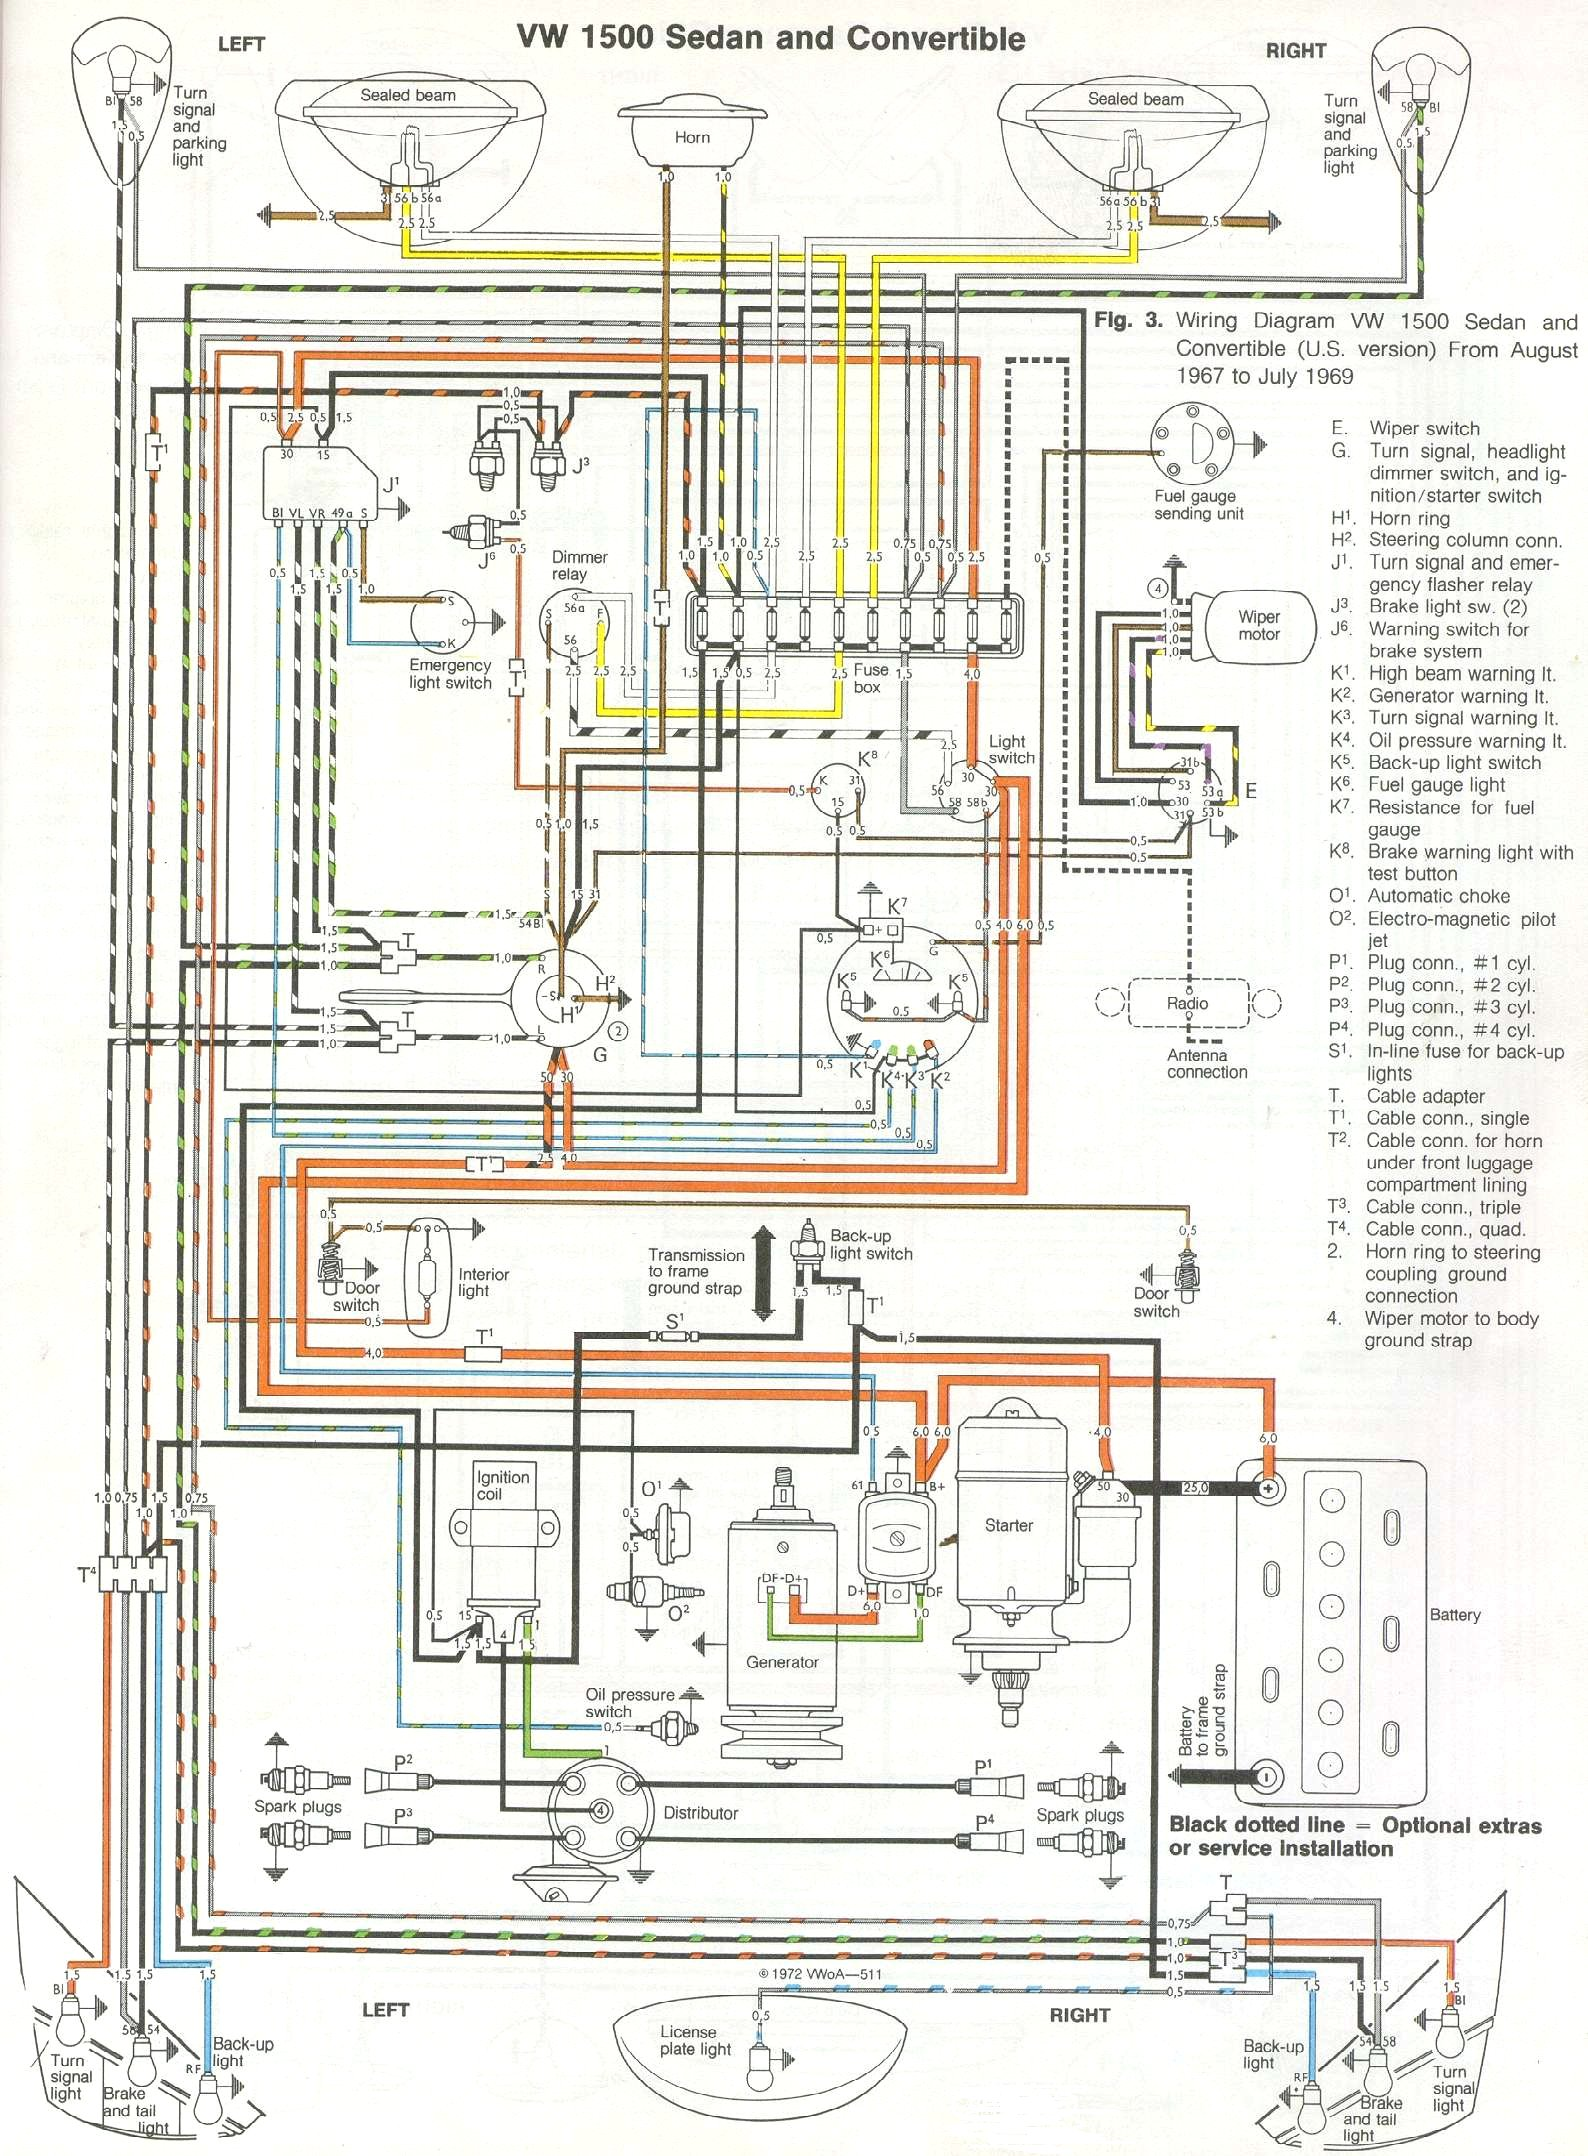 bug_6869 1969 71 beetle wiring diagram thegoldenbug com 1971 vw super beetle wiring diagram at bayanpartner.co